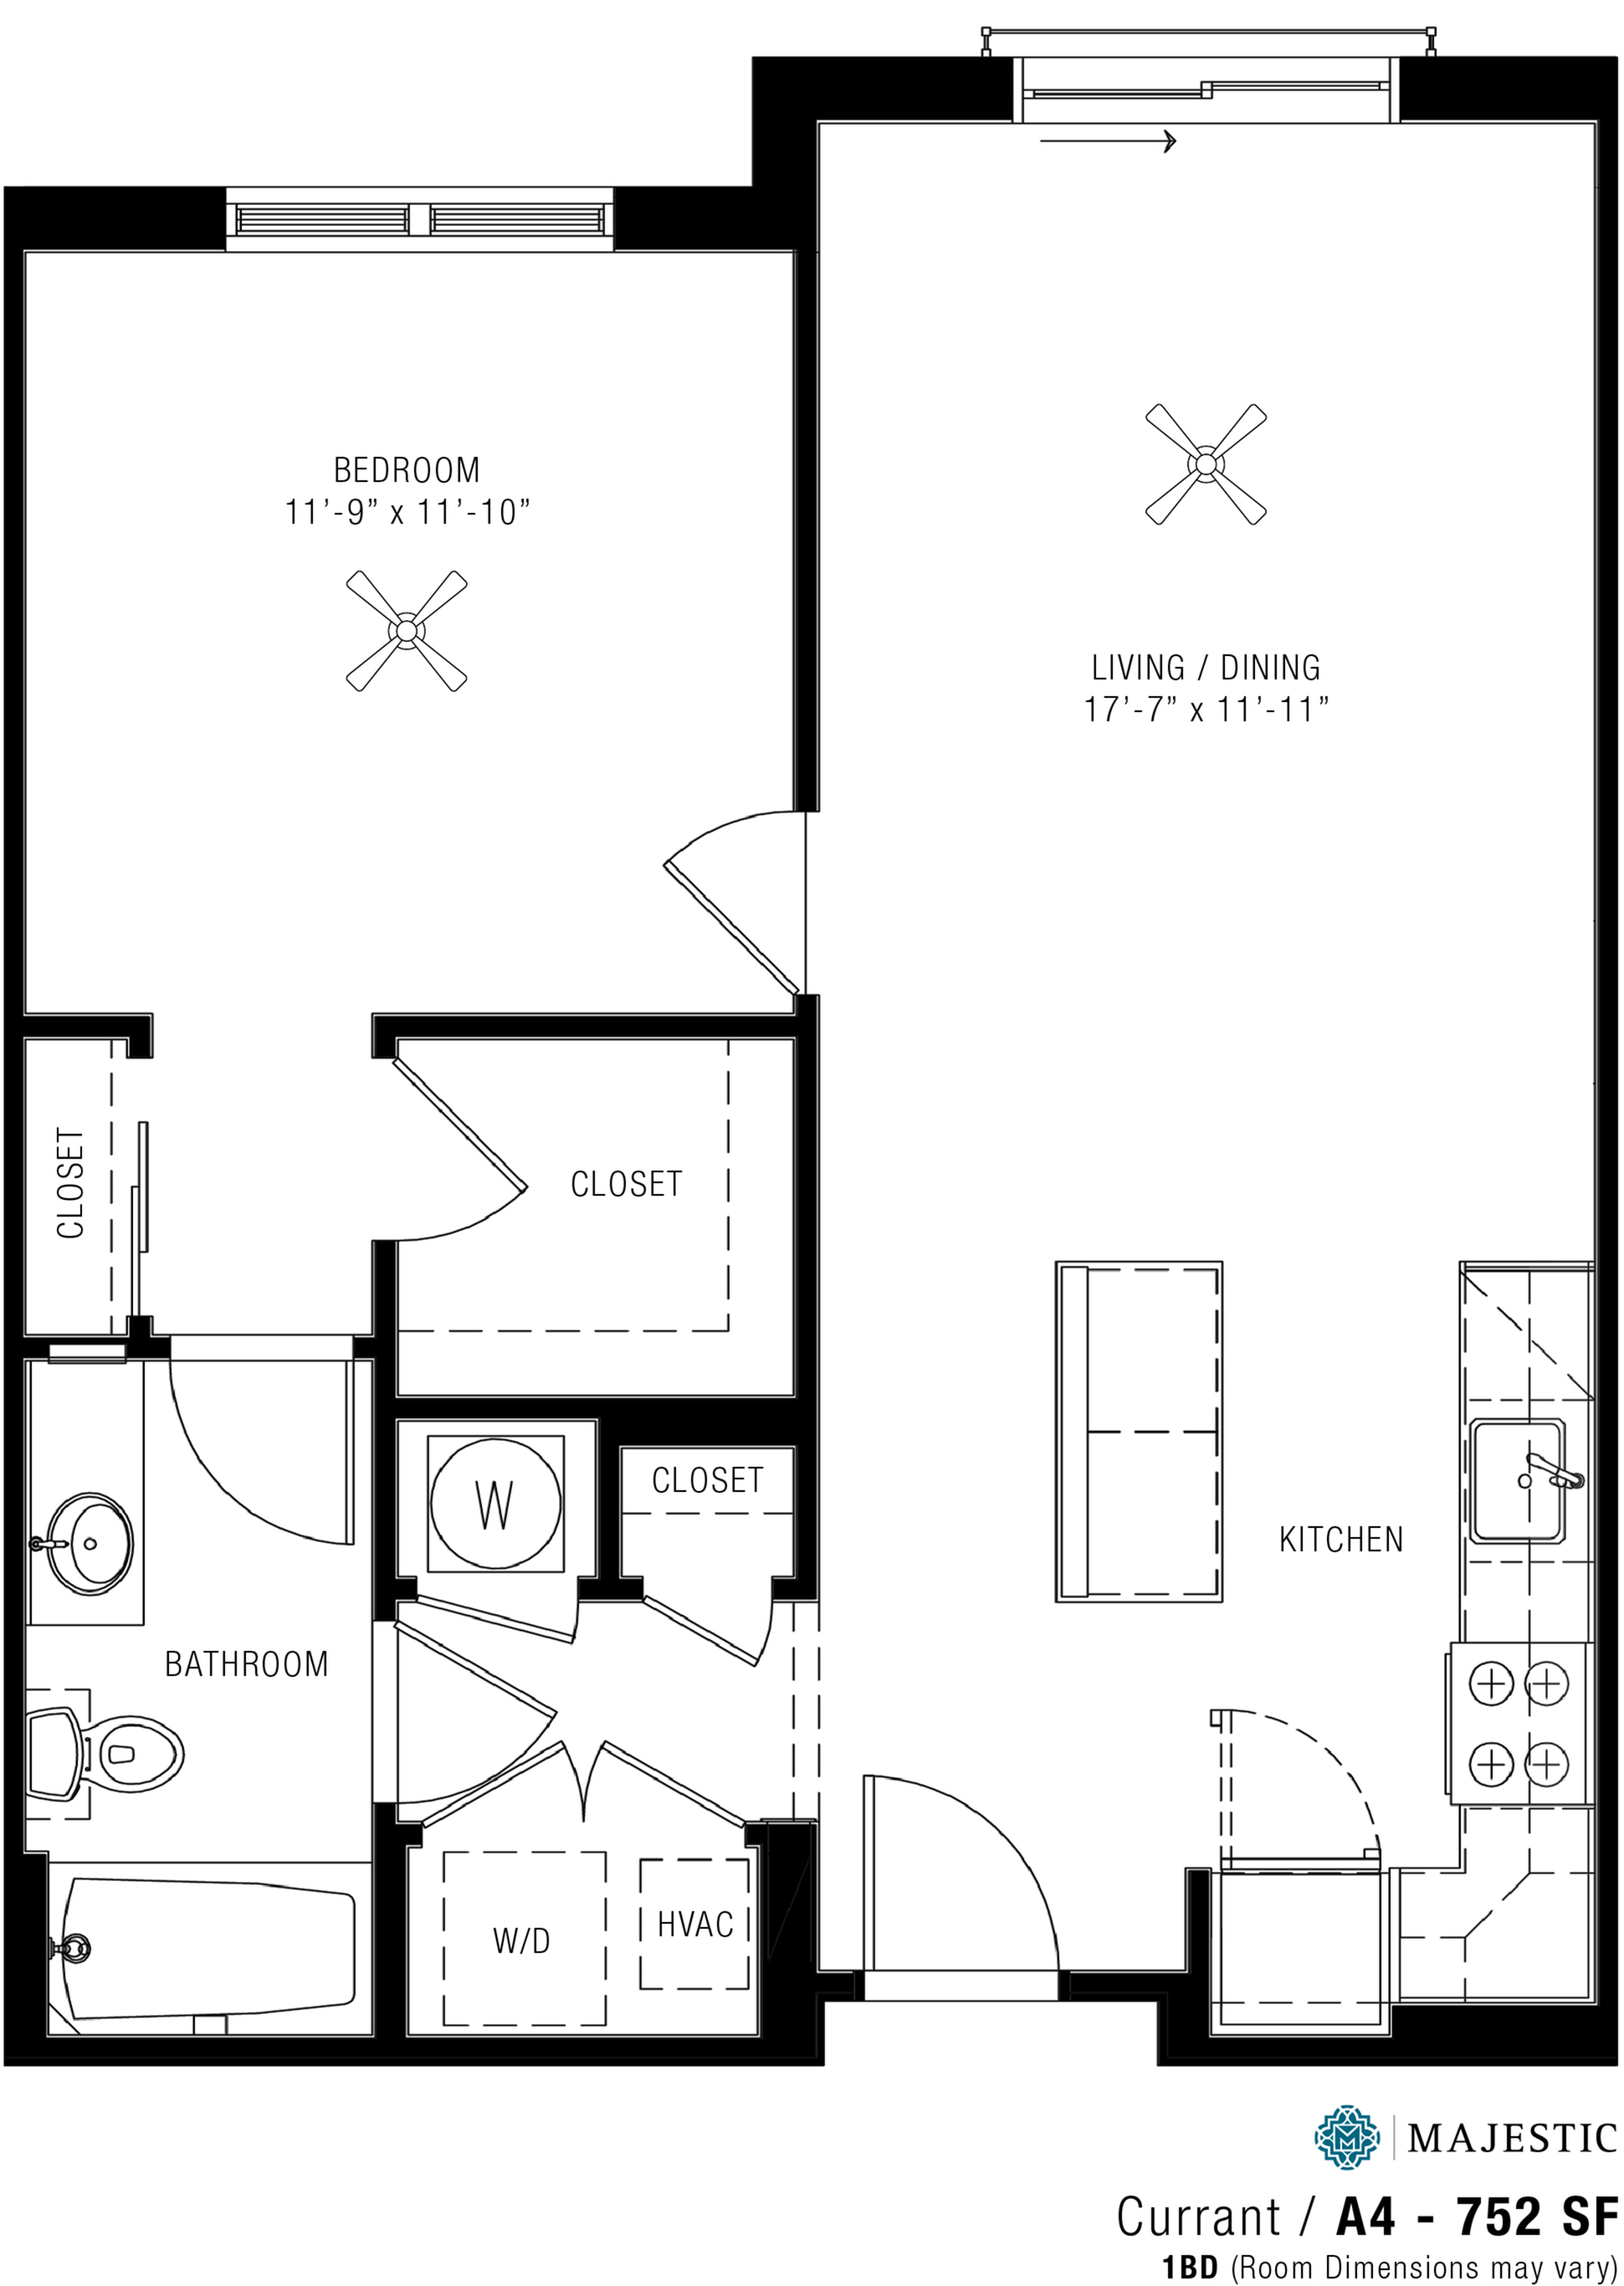 Spacious One Bedroom Apartments | Majestic 2